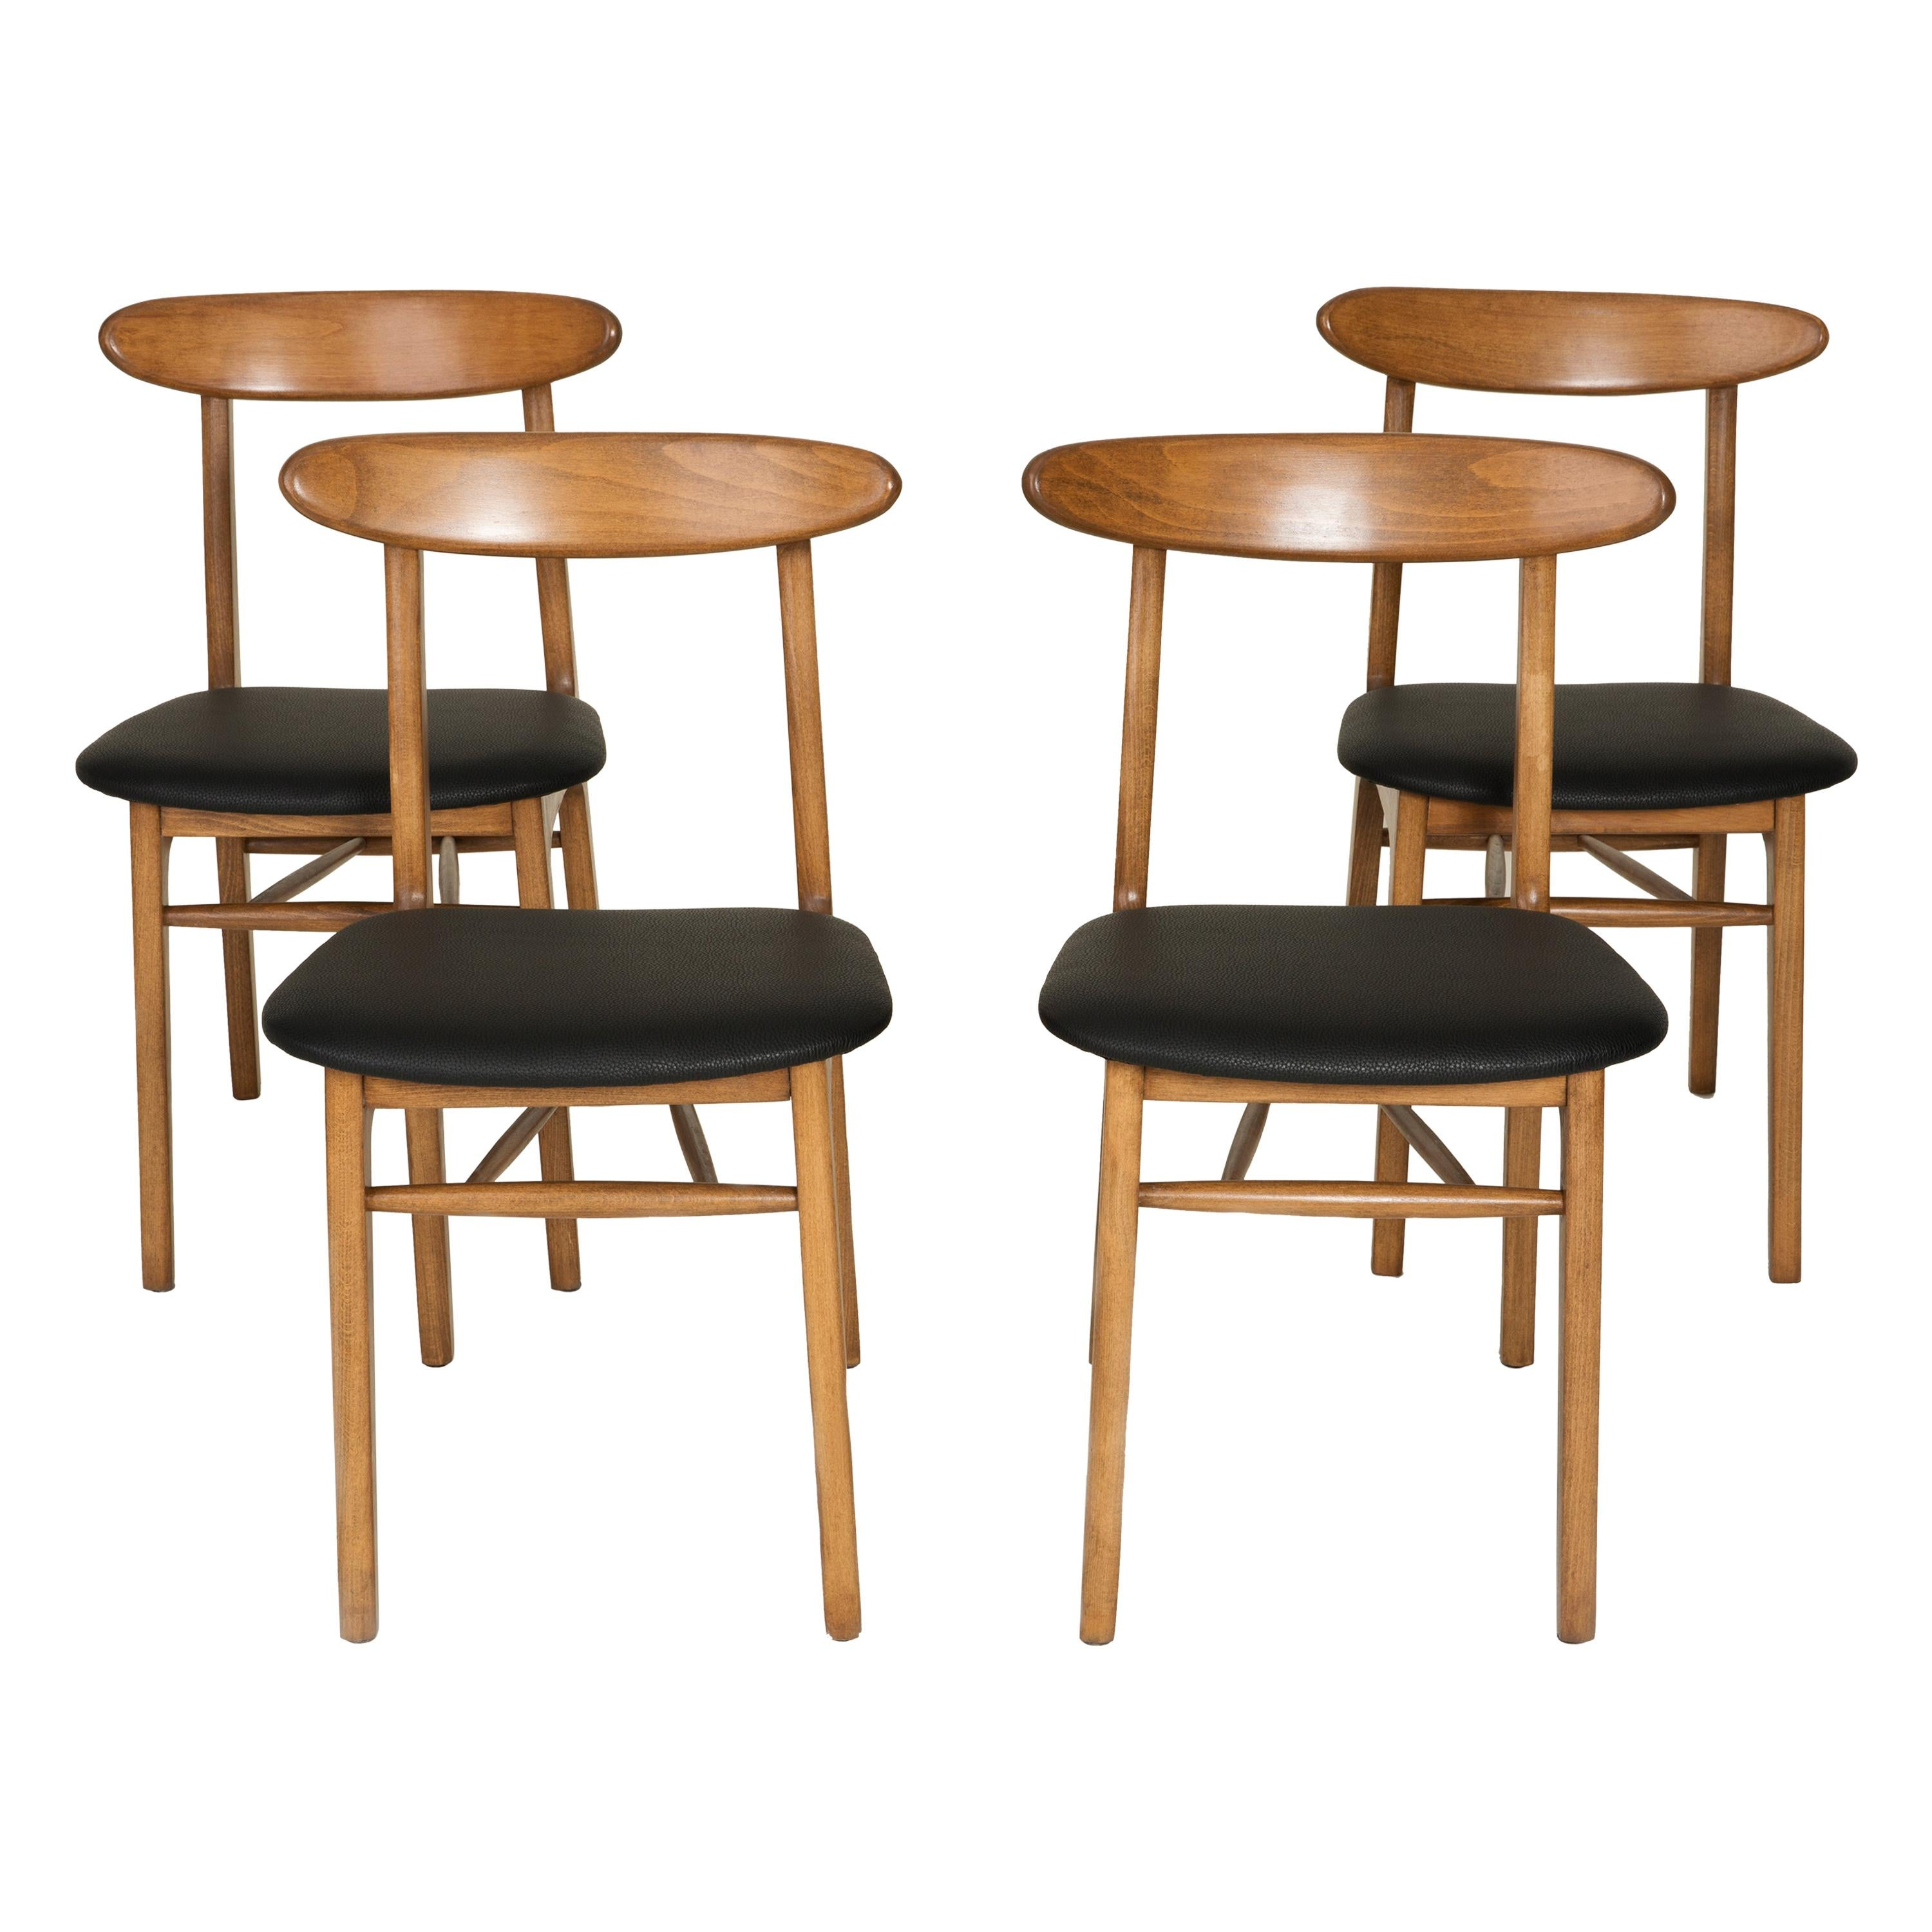 Set of Four Midcentury Black Leather Dining Chairs, 1960s